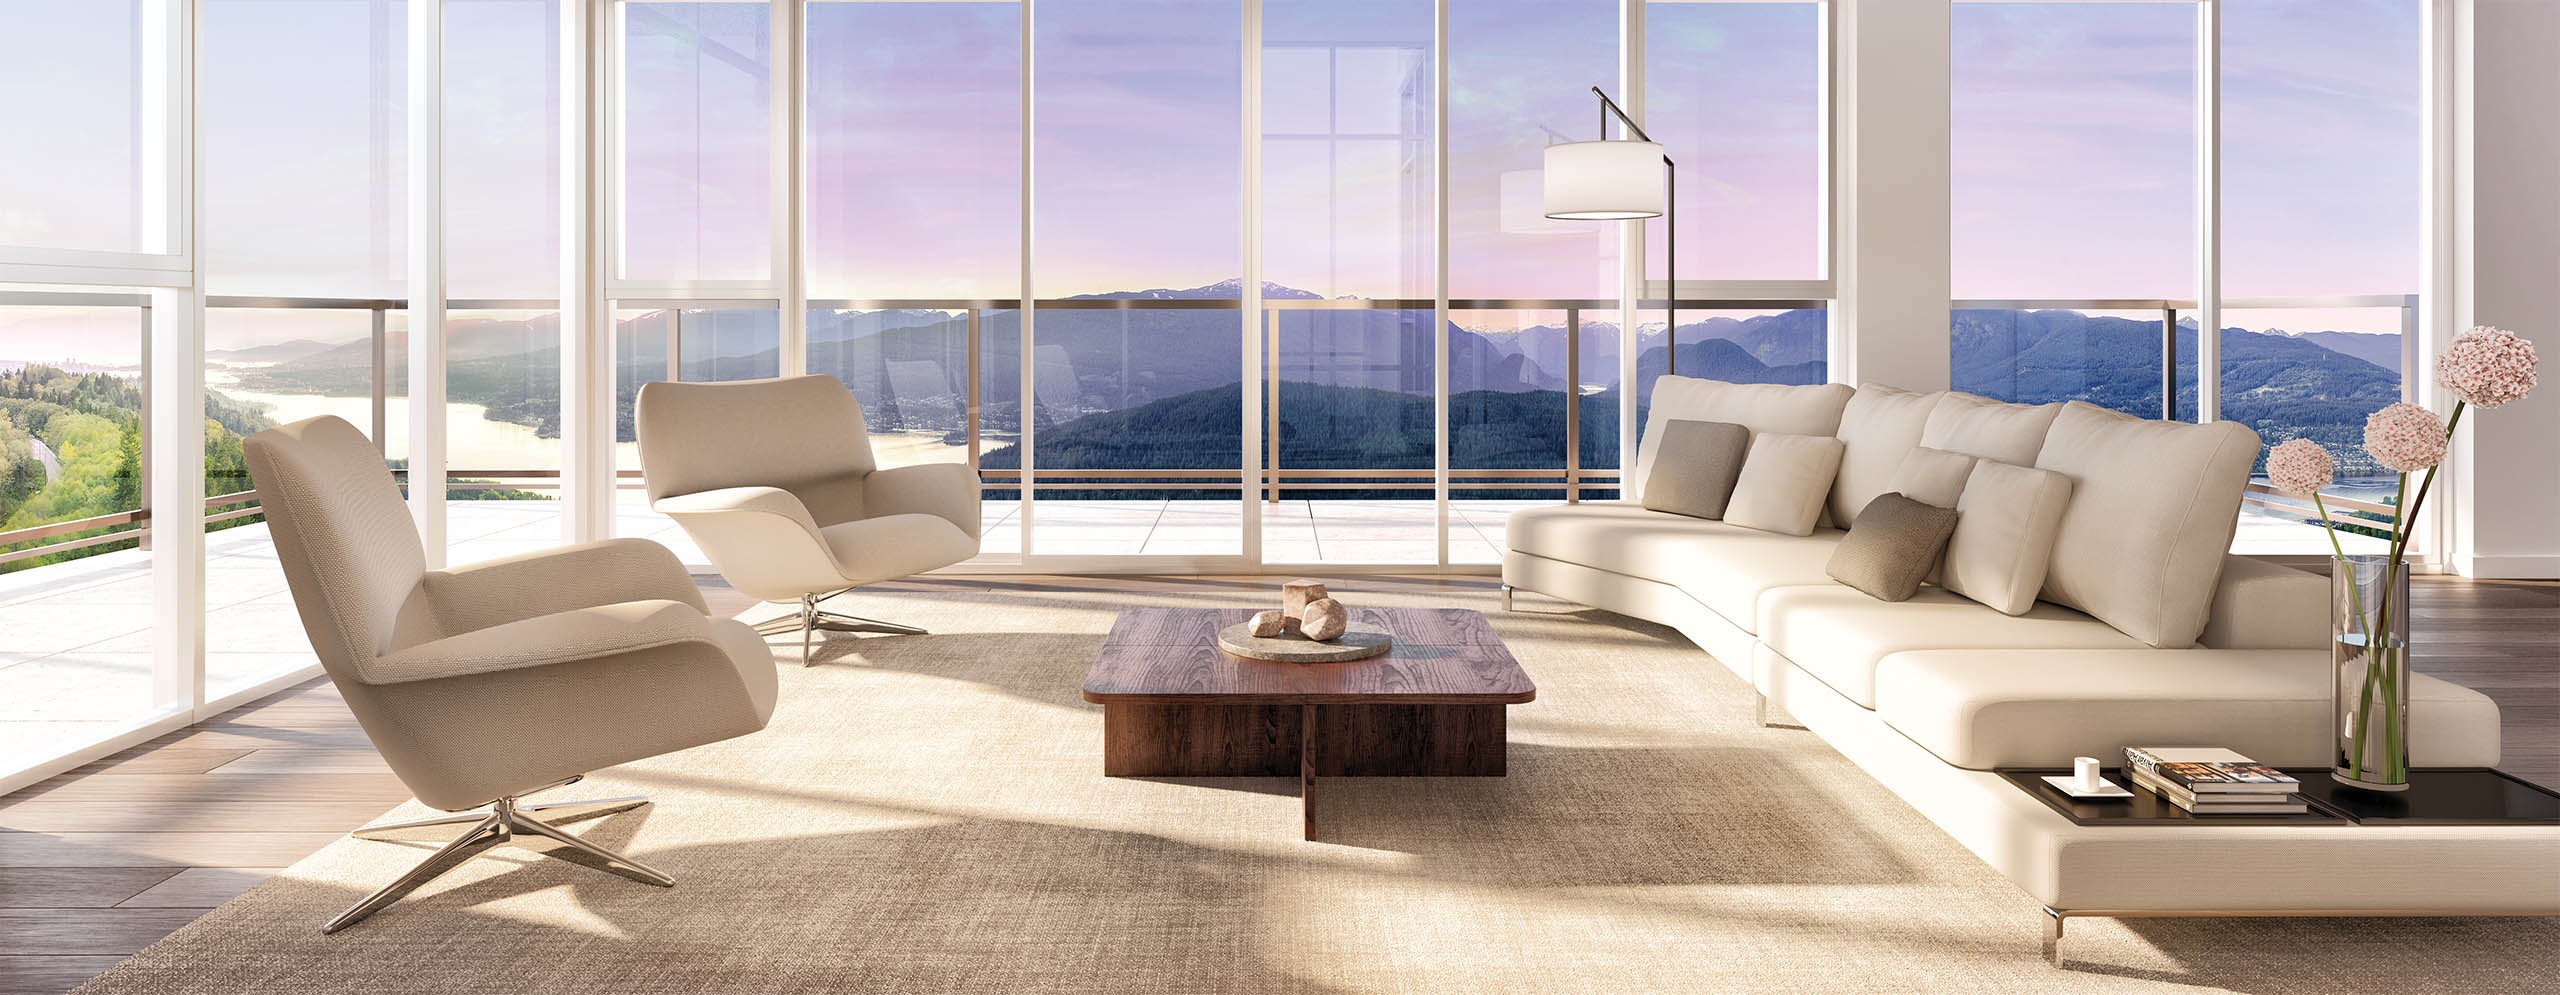 Artist concept of Terraces at the Peak penthouse living room.